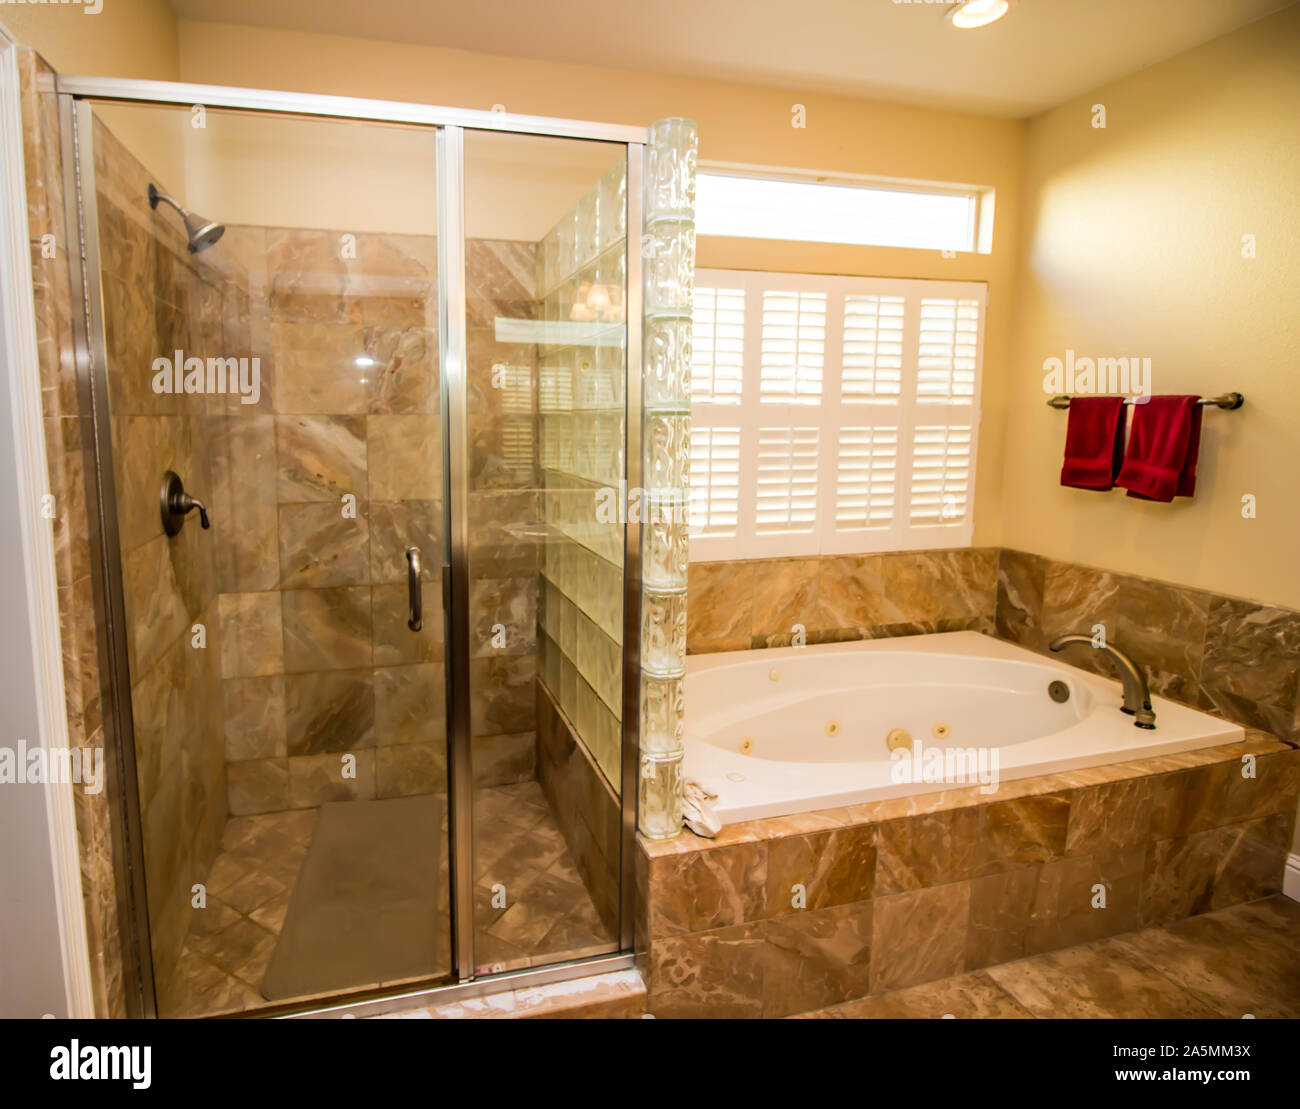 Jacuzzi Tub High Resolution Stock Photography And Images Alamy